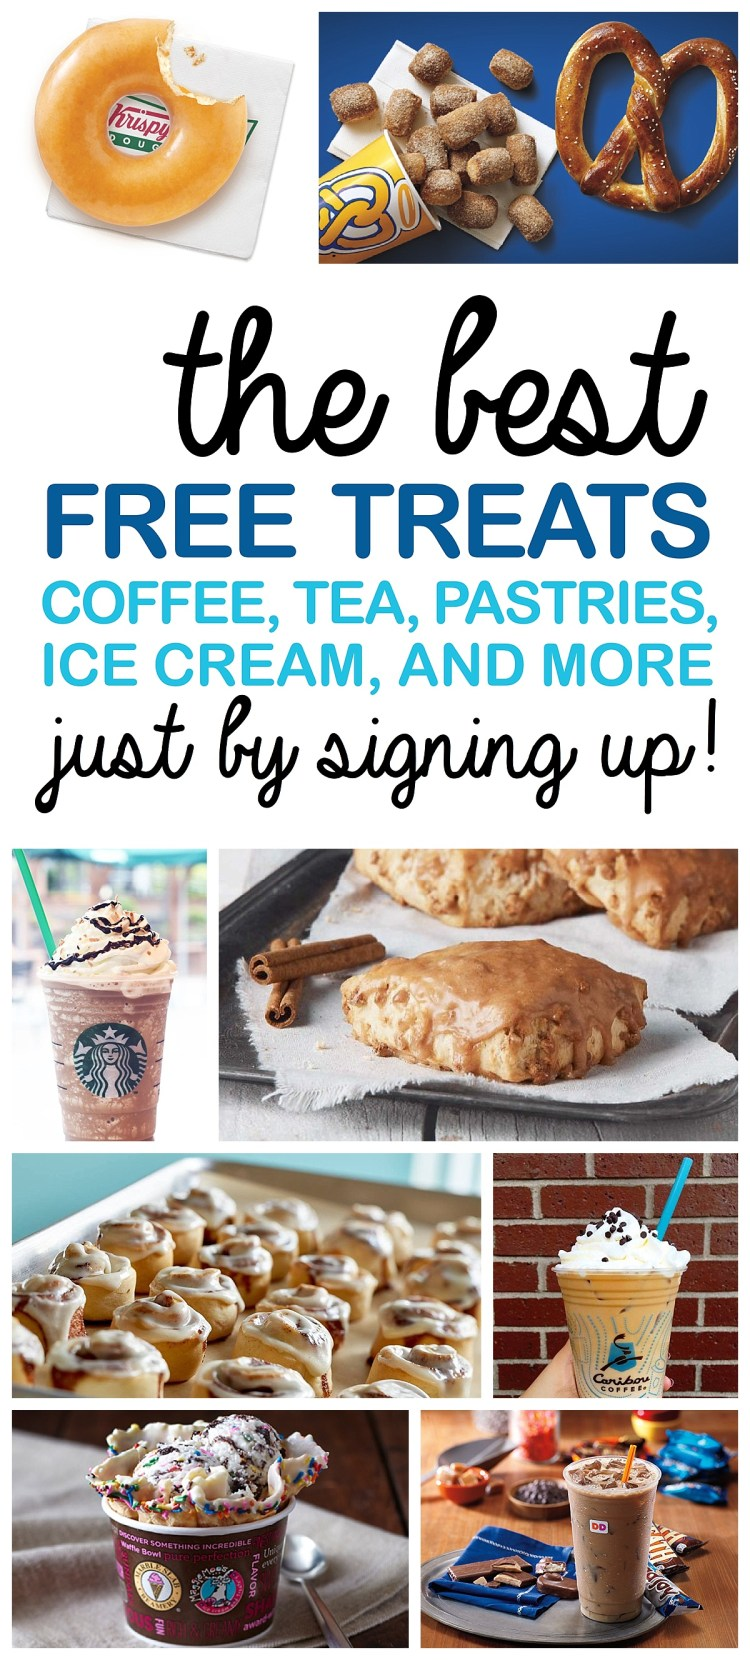 Free Food   Sign Up for Free Food   Email Sign Up Deals   Restaurant Treat Deals    Deals 2017   Free Treats   Birthday Freebies   Did you know that you can be rewarded with free food just be signing up for their emails? We at Six Clever Sisters love ALL these amazing #freebies! Head on over to the blog to find out all the best free treats!